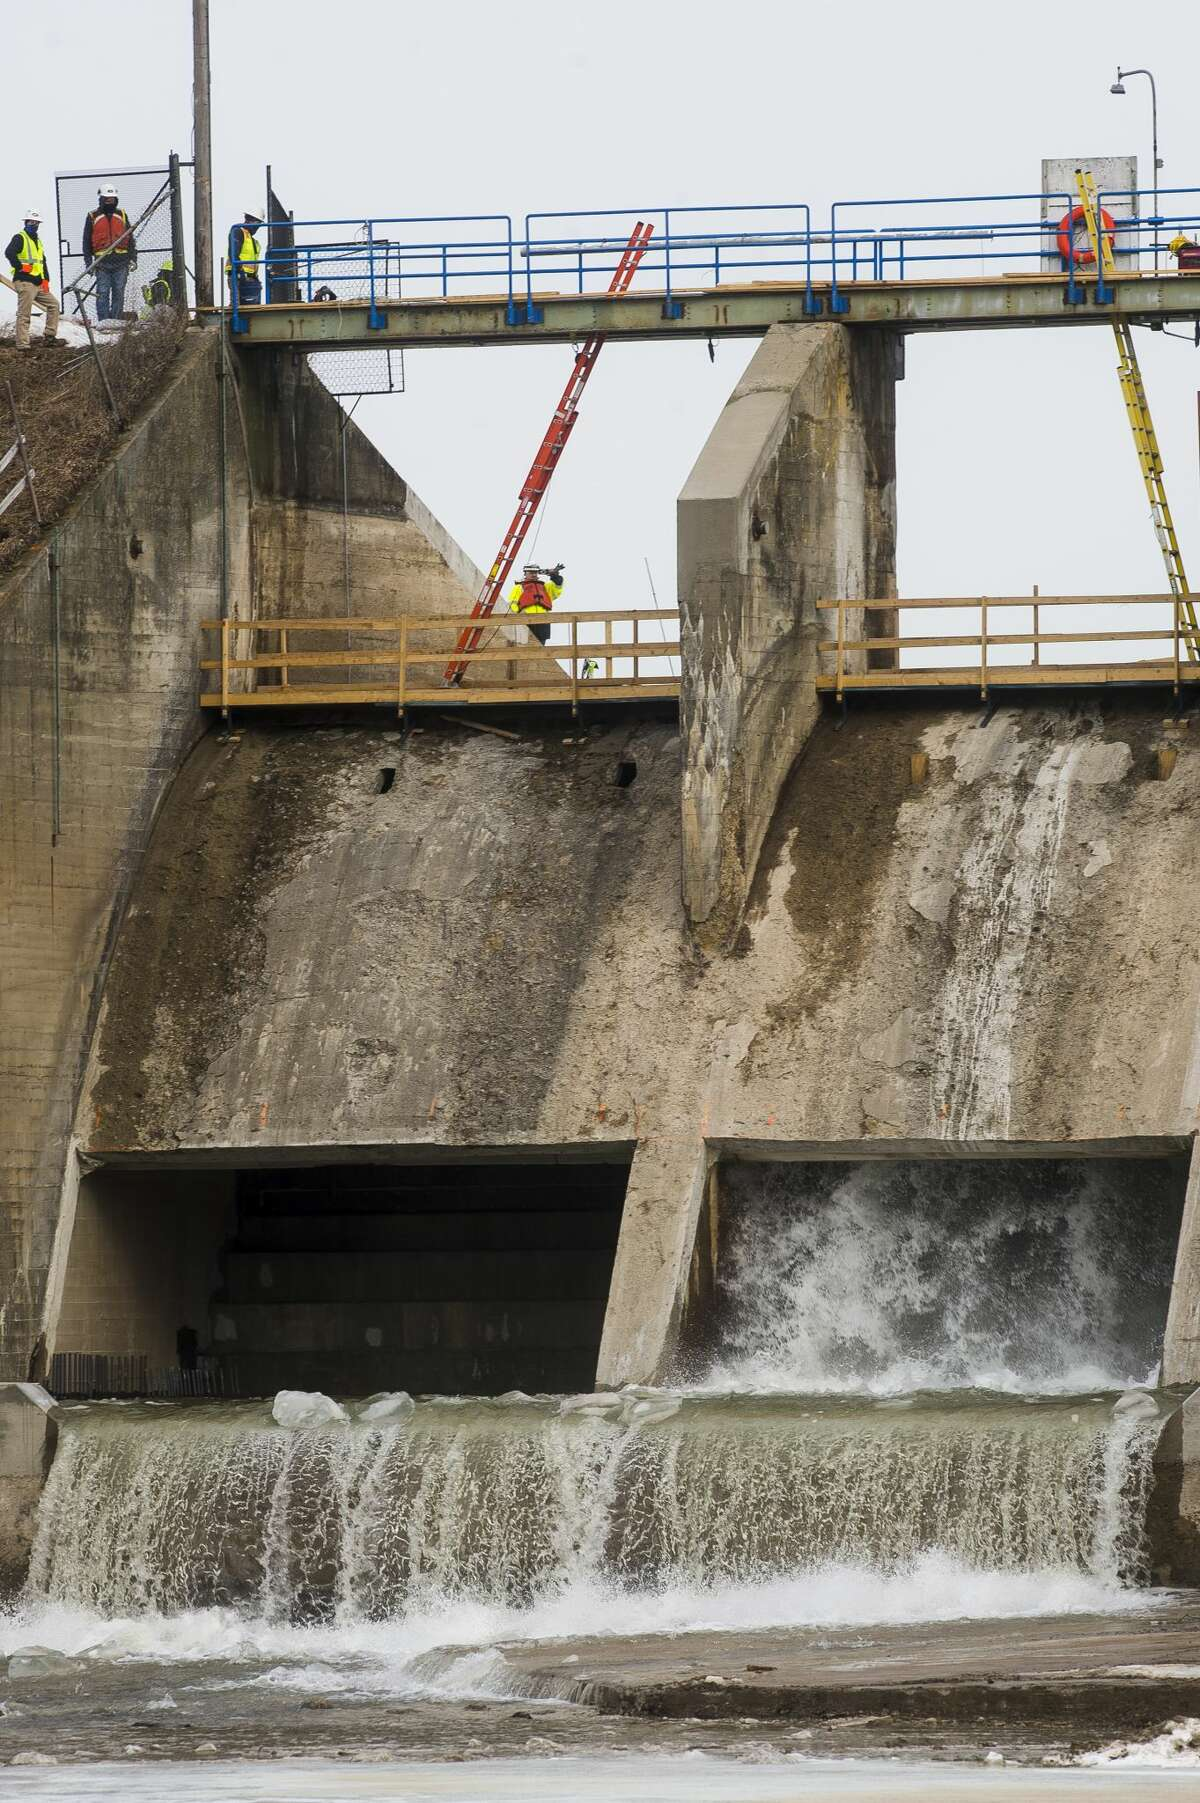 Water begins to trickle through a spillway gate of the Edenville Dam as the drawdown of the Tobacco River spillway begins Wednesday morning, Feb. 24, 2021 in Beaverton. The drawdown is a necessary part of an ongoing project to make the dam more stable and reduce the risk of flash flooding, after the Edenville Dam failed last May. (Katy Kildee/kkildee@mdn.net)